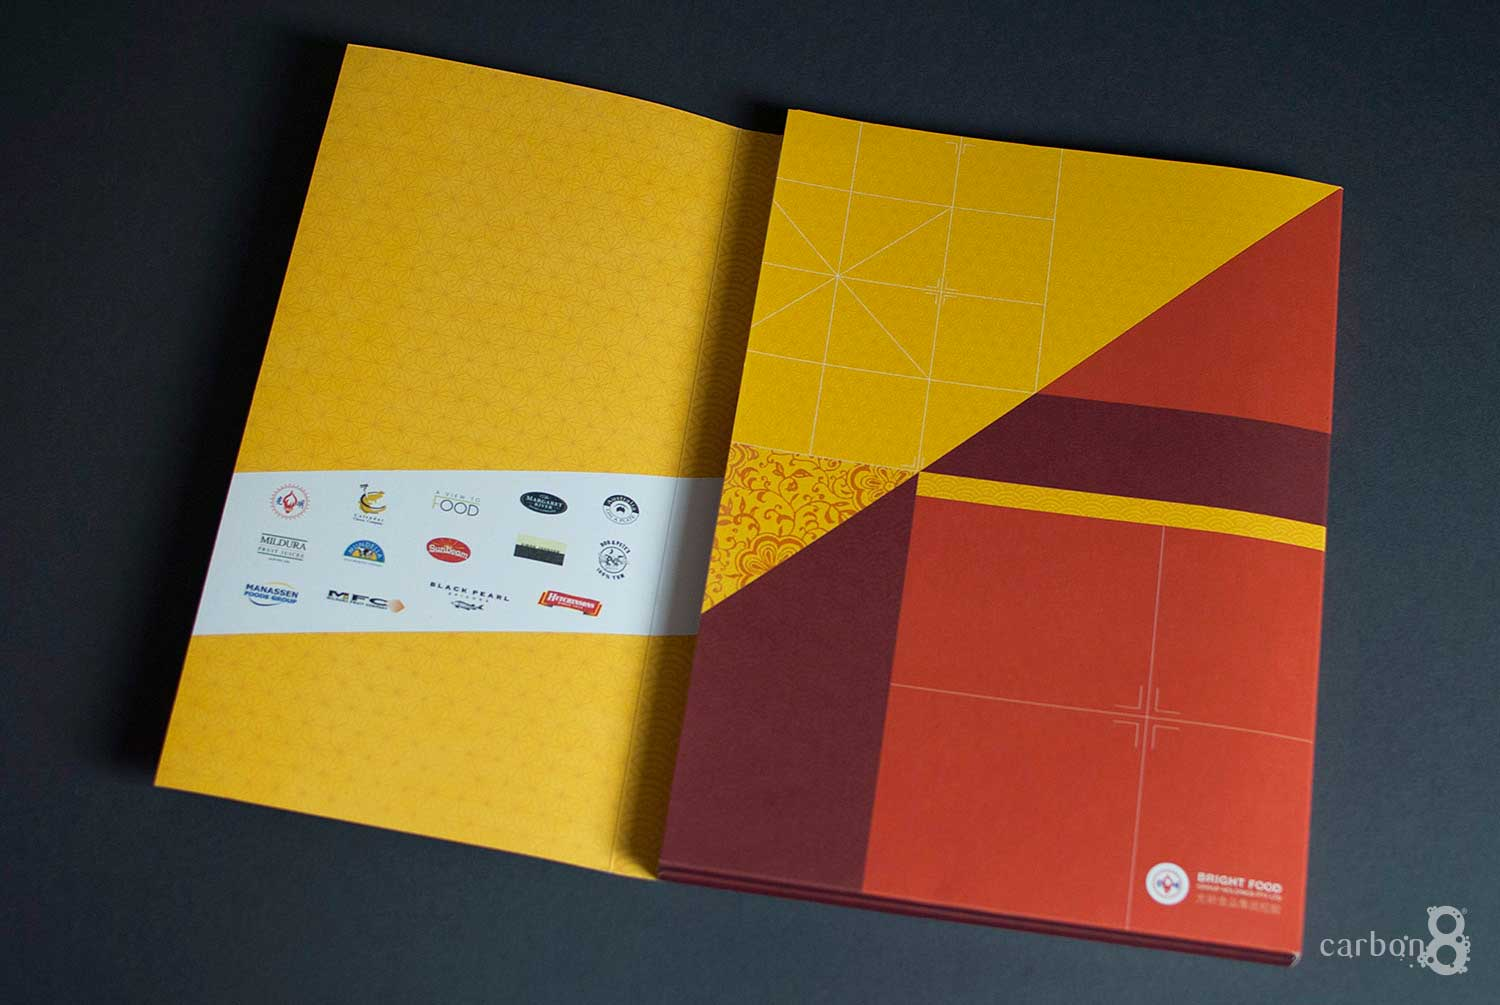 brochure_spot_uv_folder_inside_bright_food.jpg